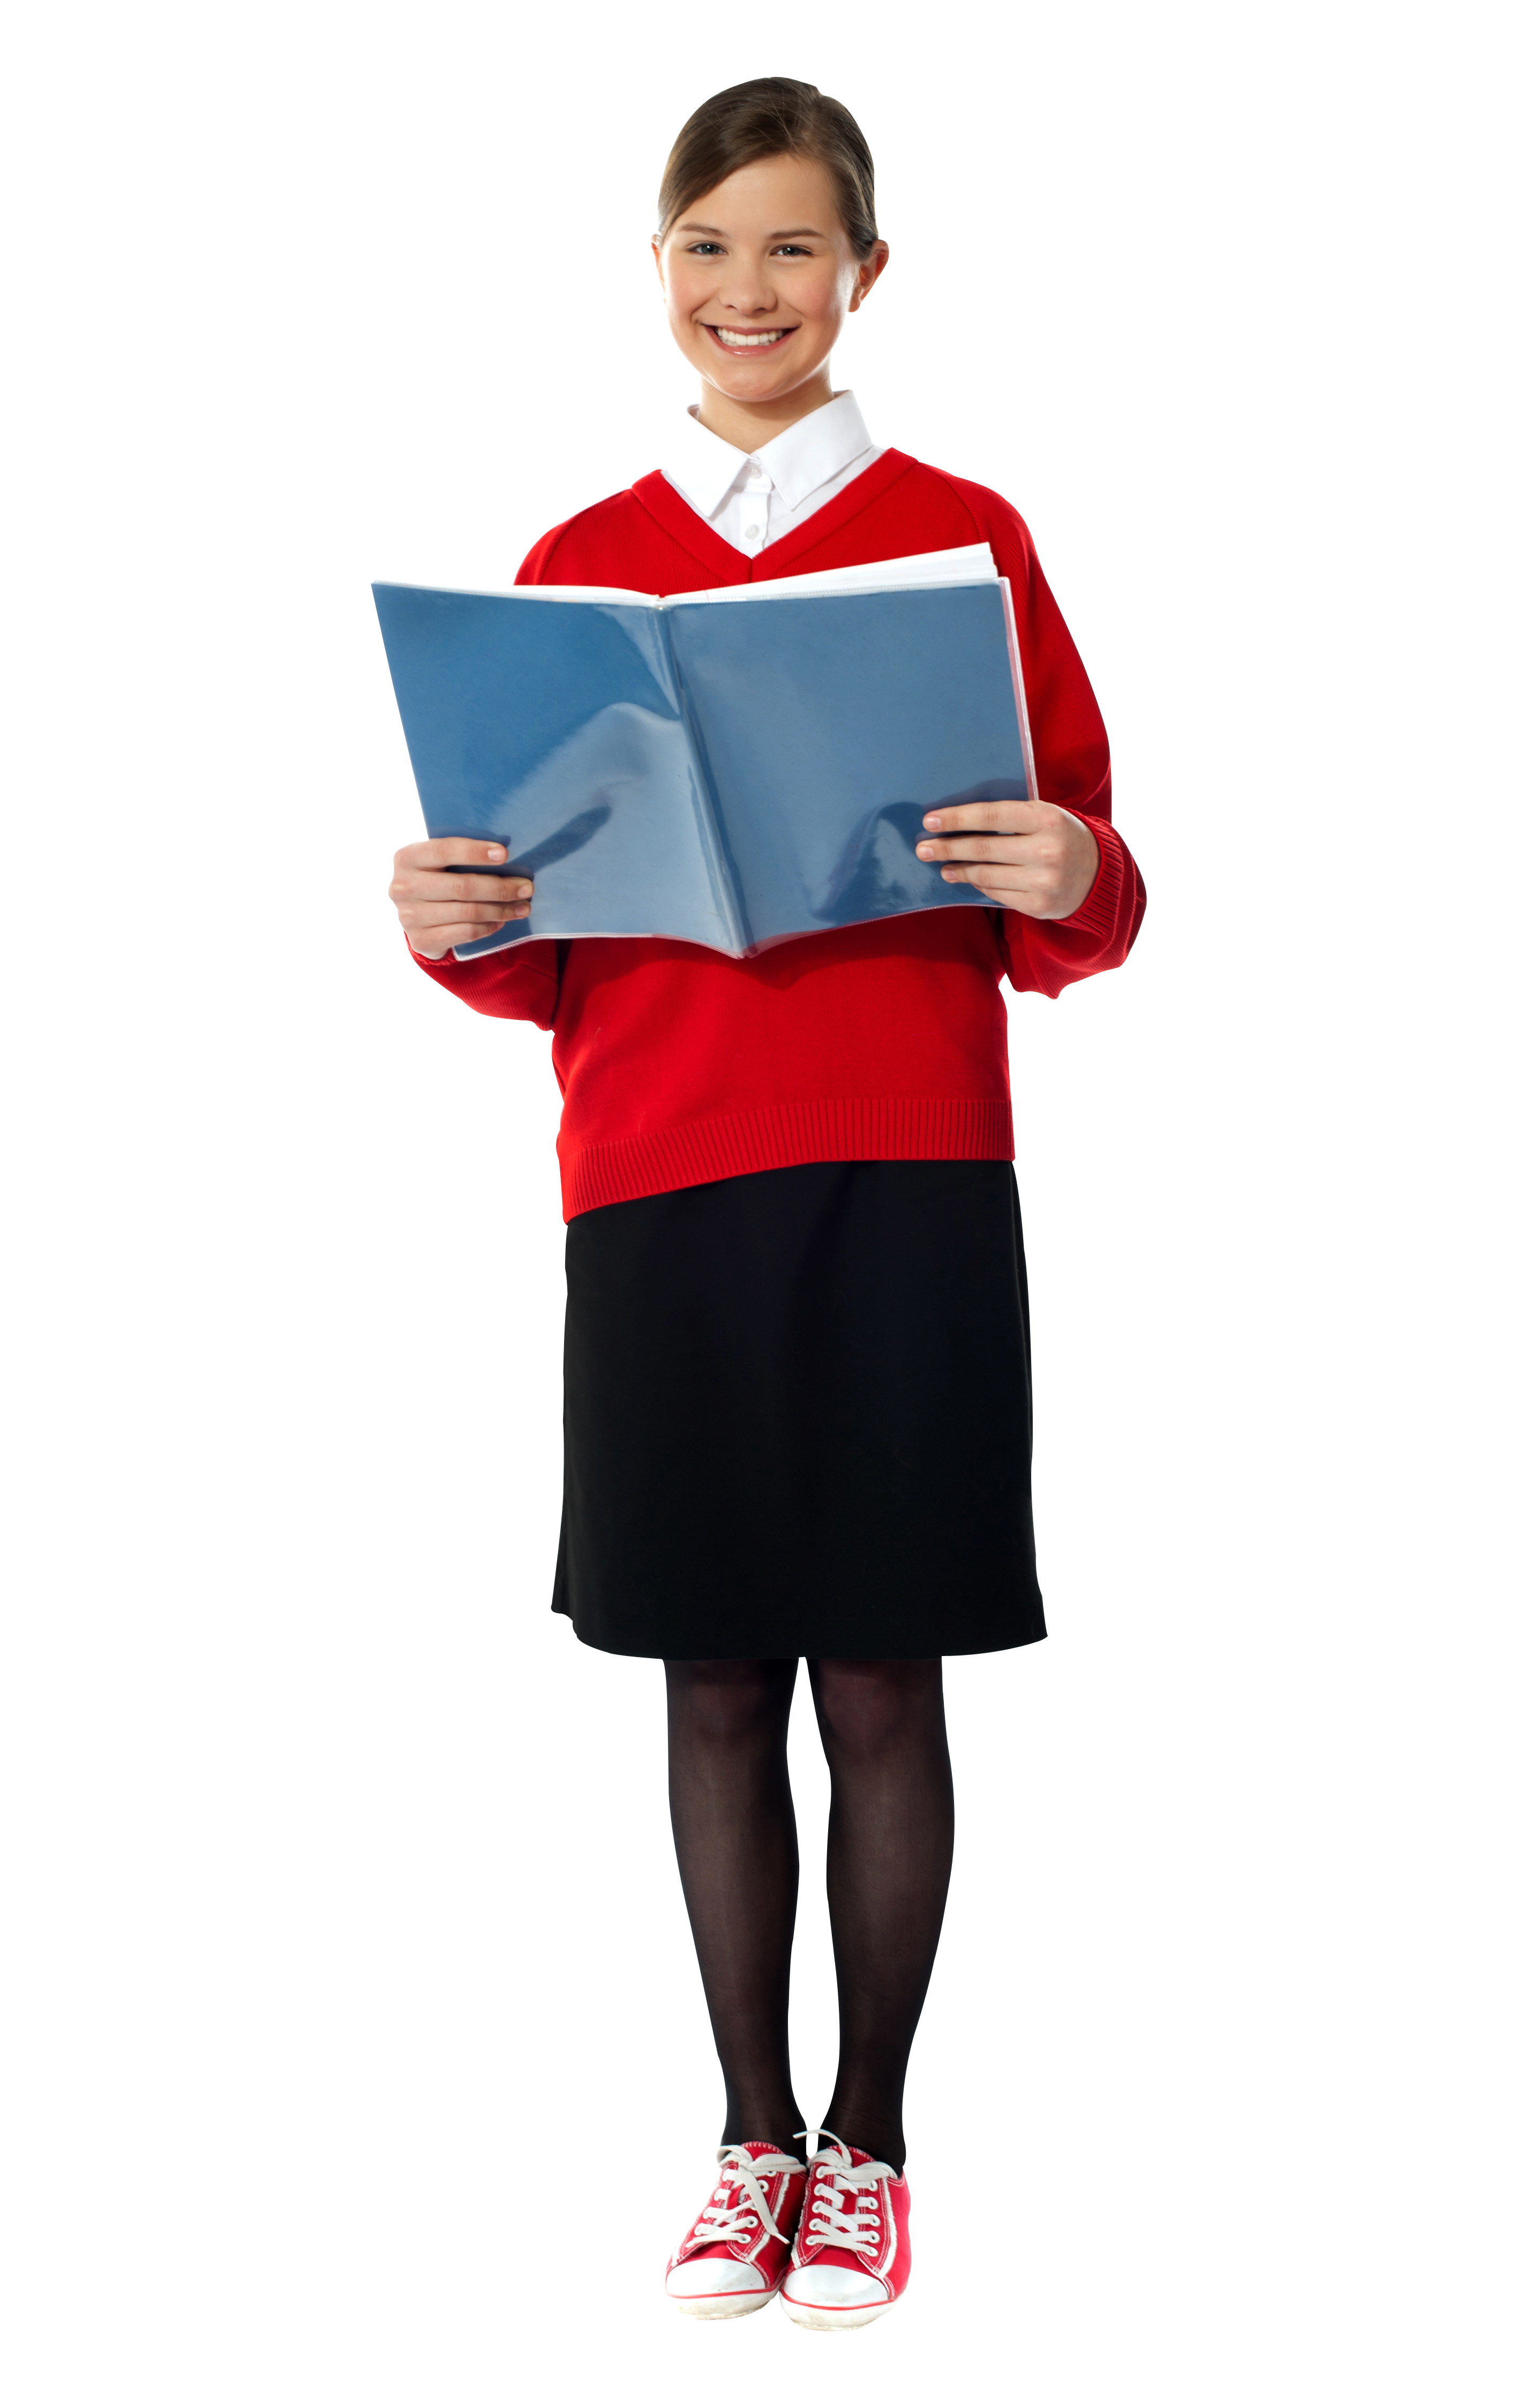 Png student. Royalty free images play